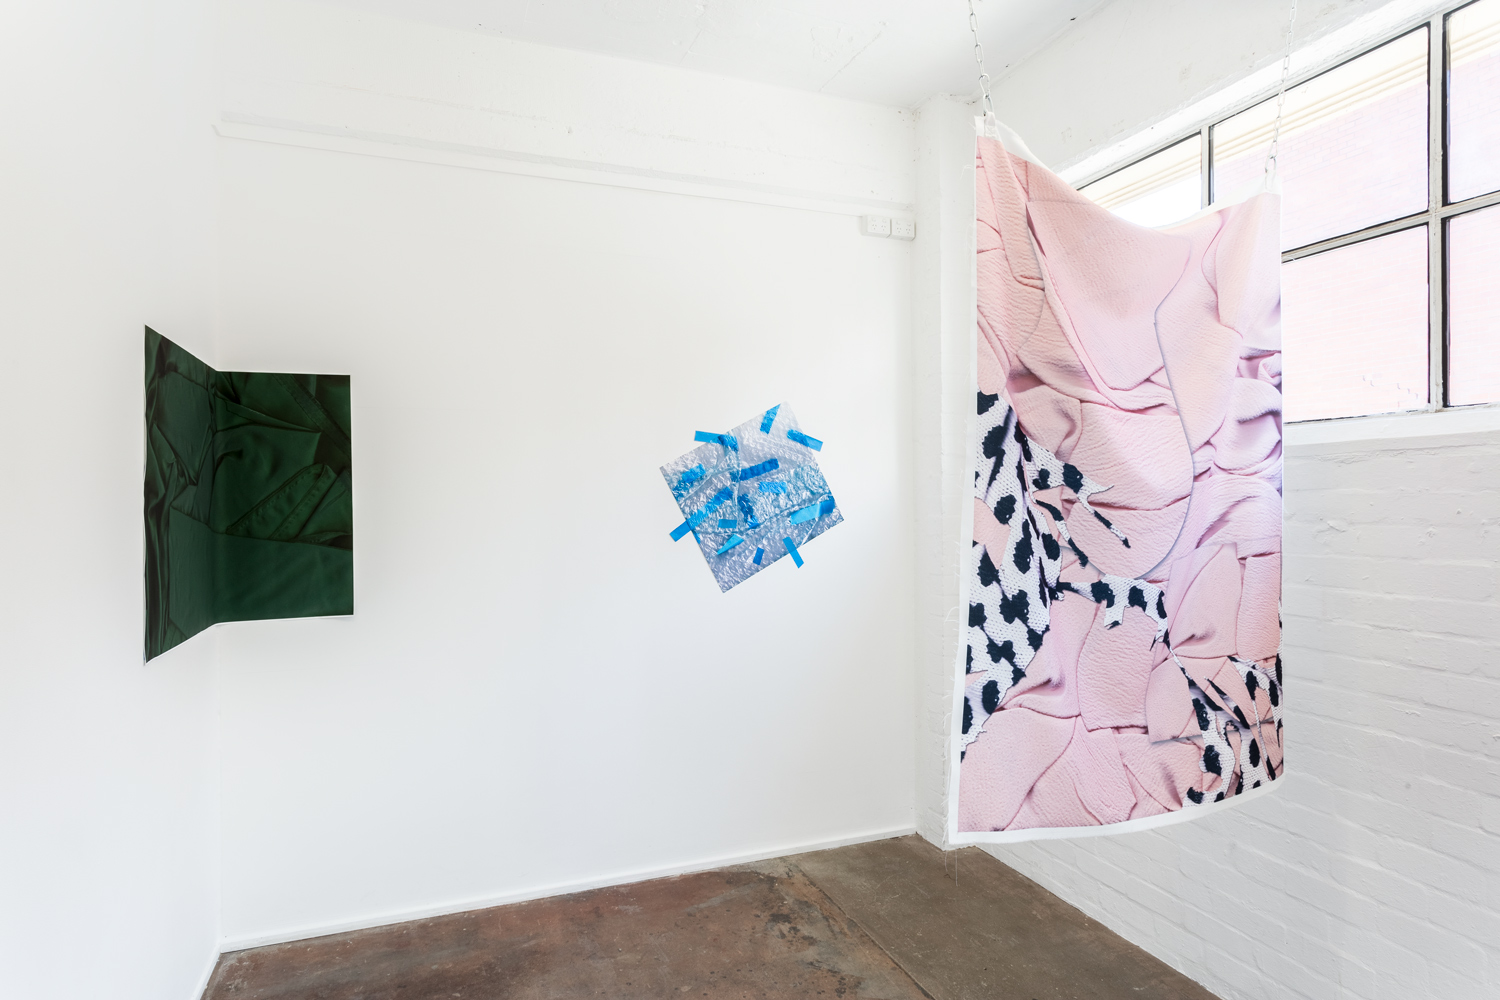 Installation view of exhibition  A Loud Cellophane at Bus Projects, Melbourne 2018  L-R: Moss Forest, Blue Line, Jumper  Photo: Christo Crocker